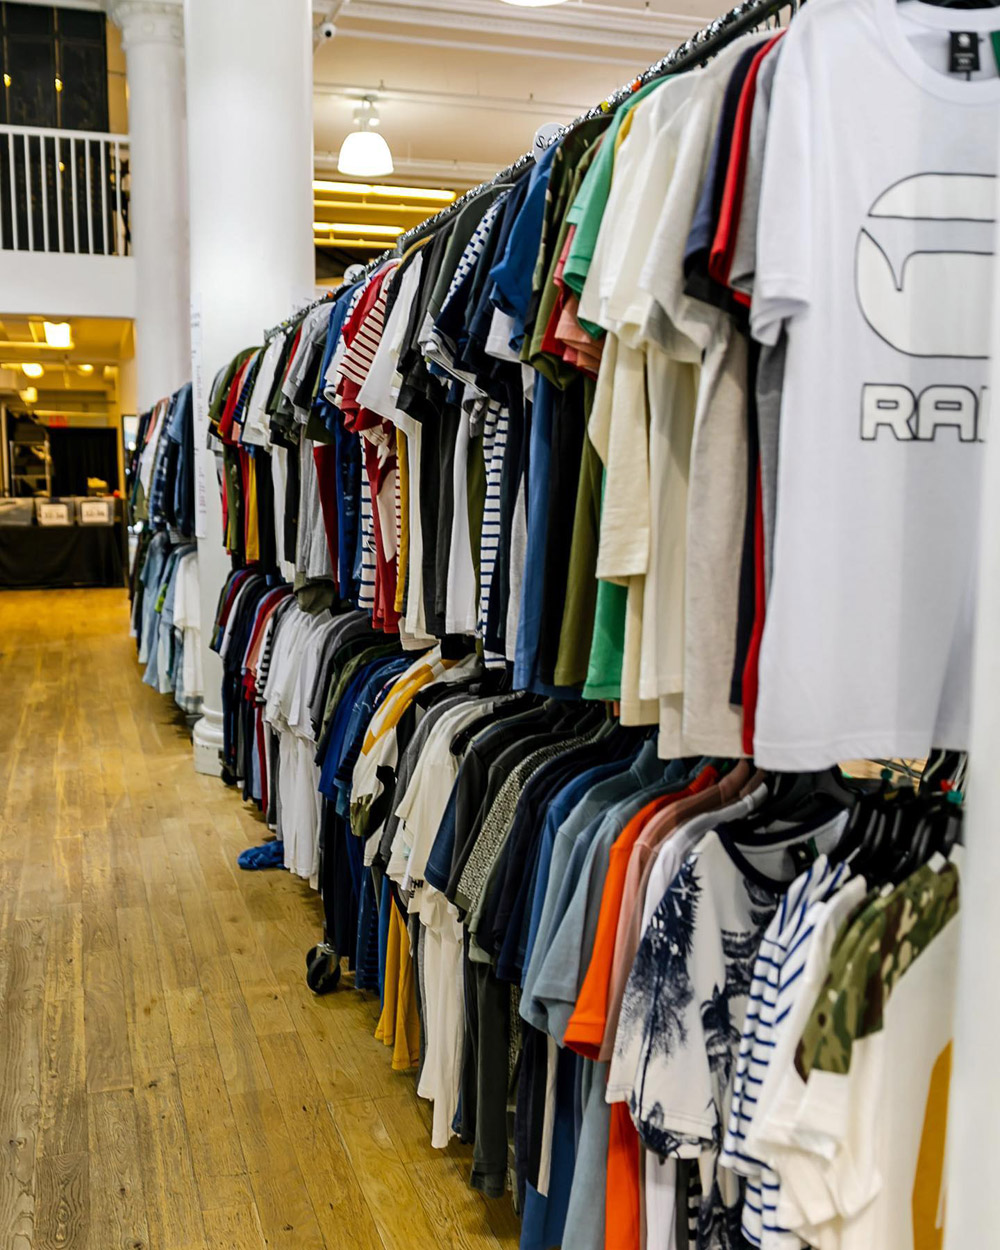 Pics from Inside the G-Star RAW Sample Sale